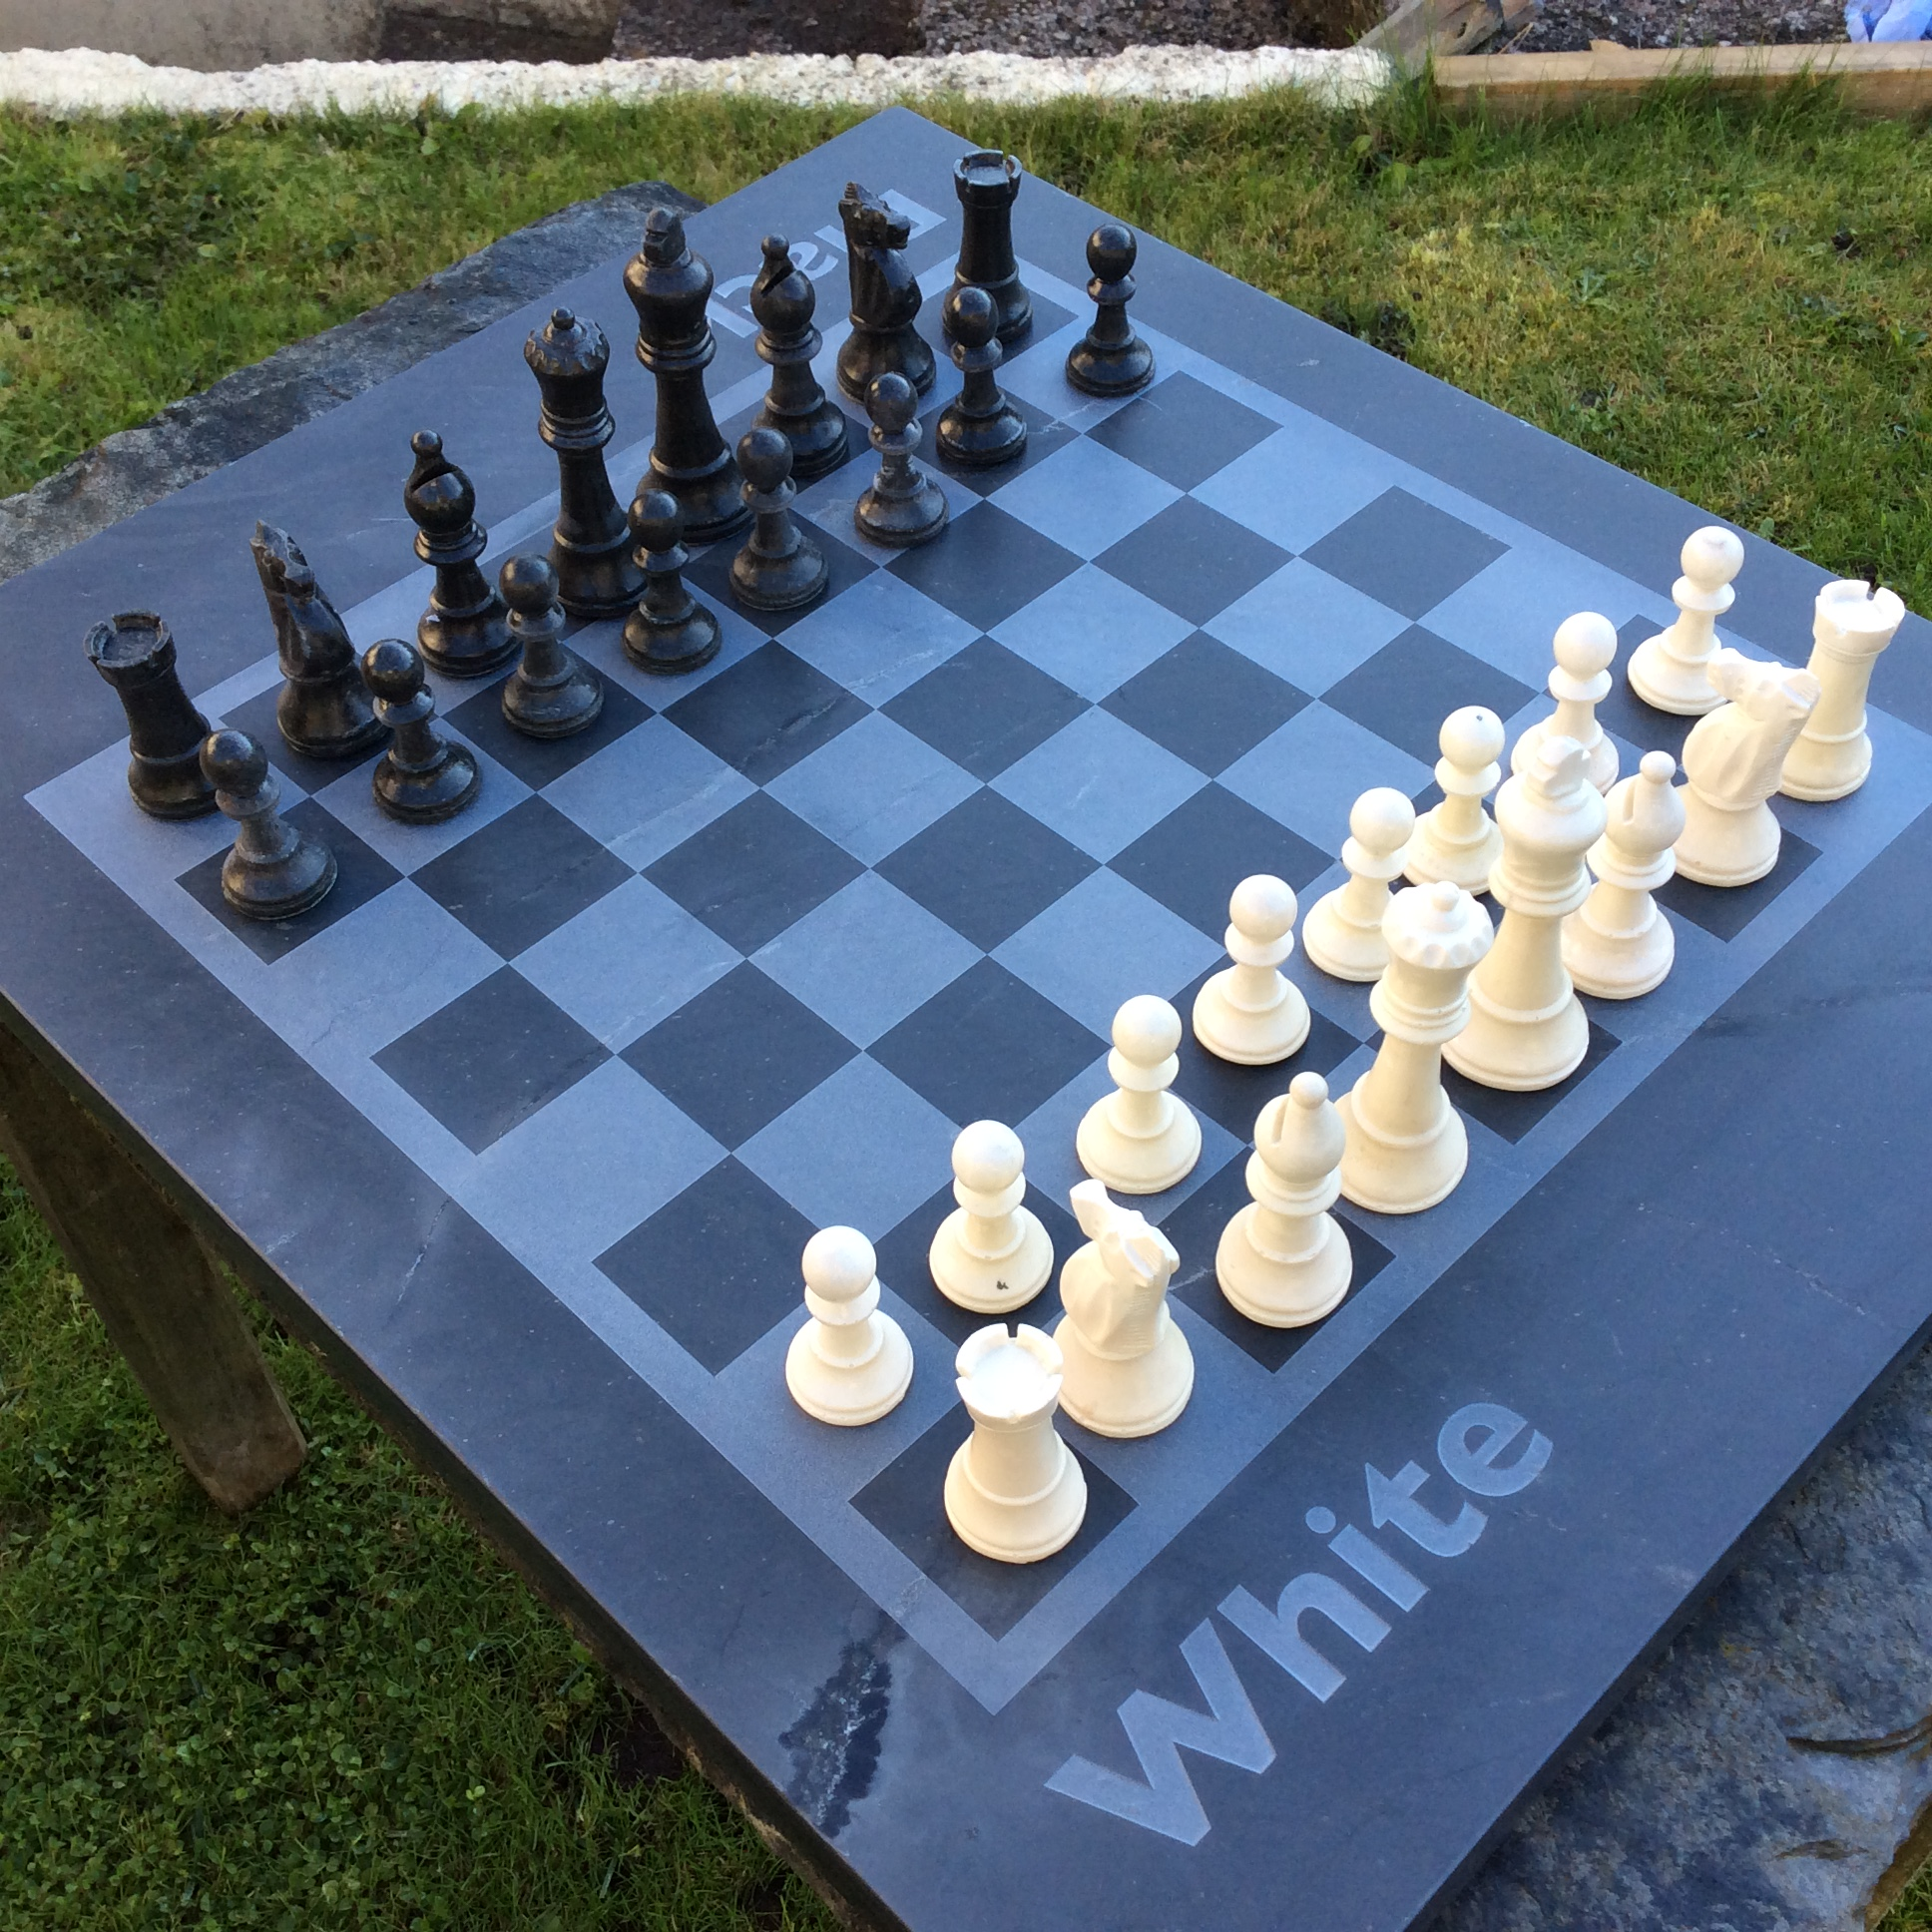 bespoke cornish slate chess board with slate chess pieces